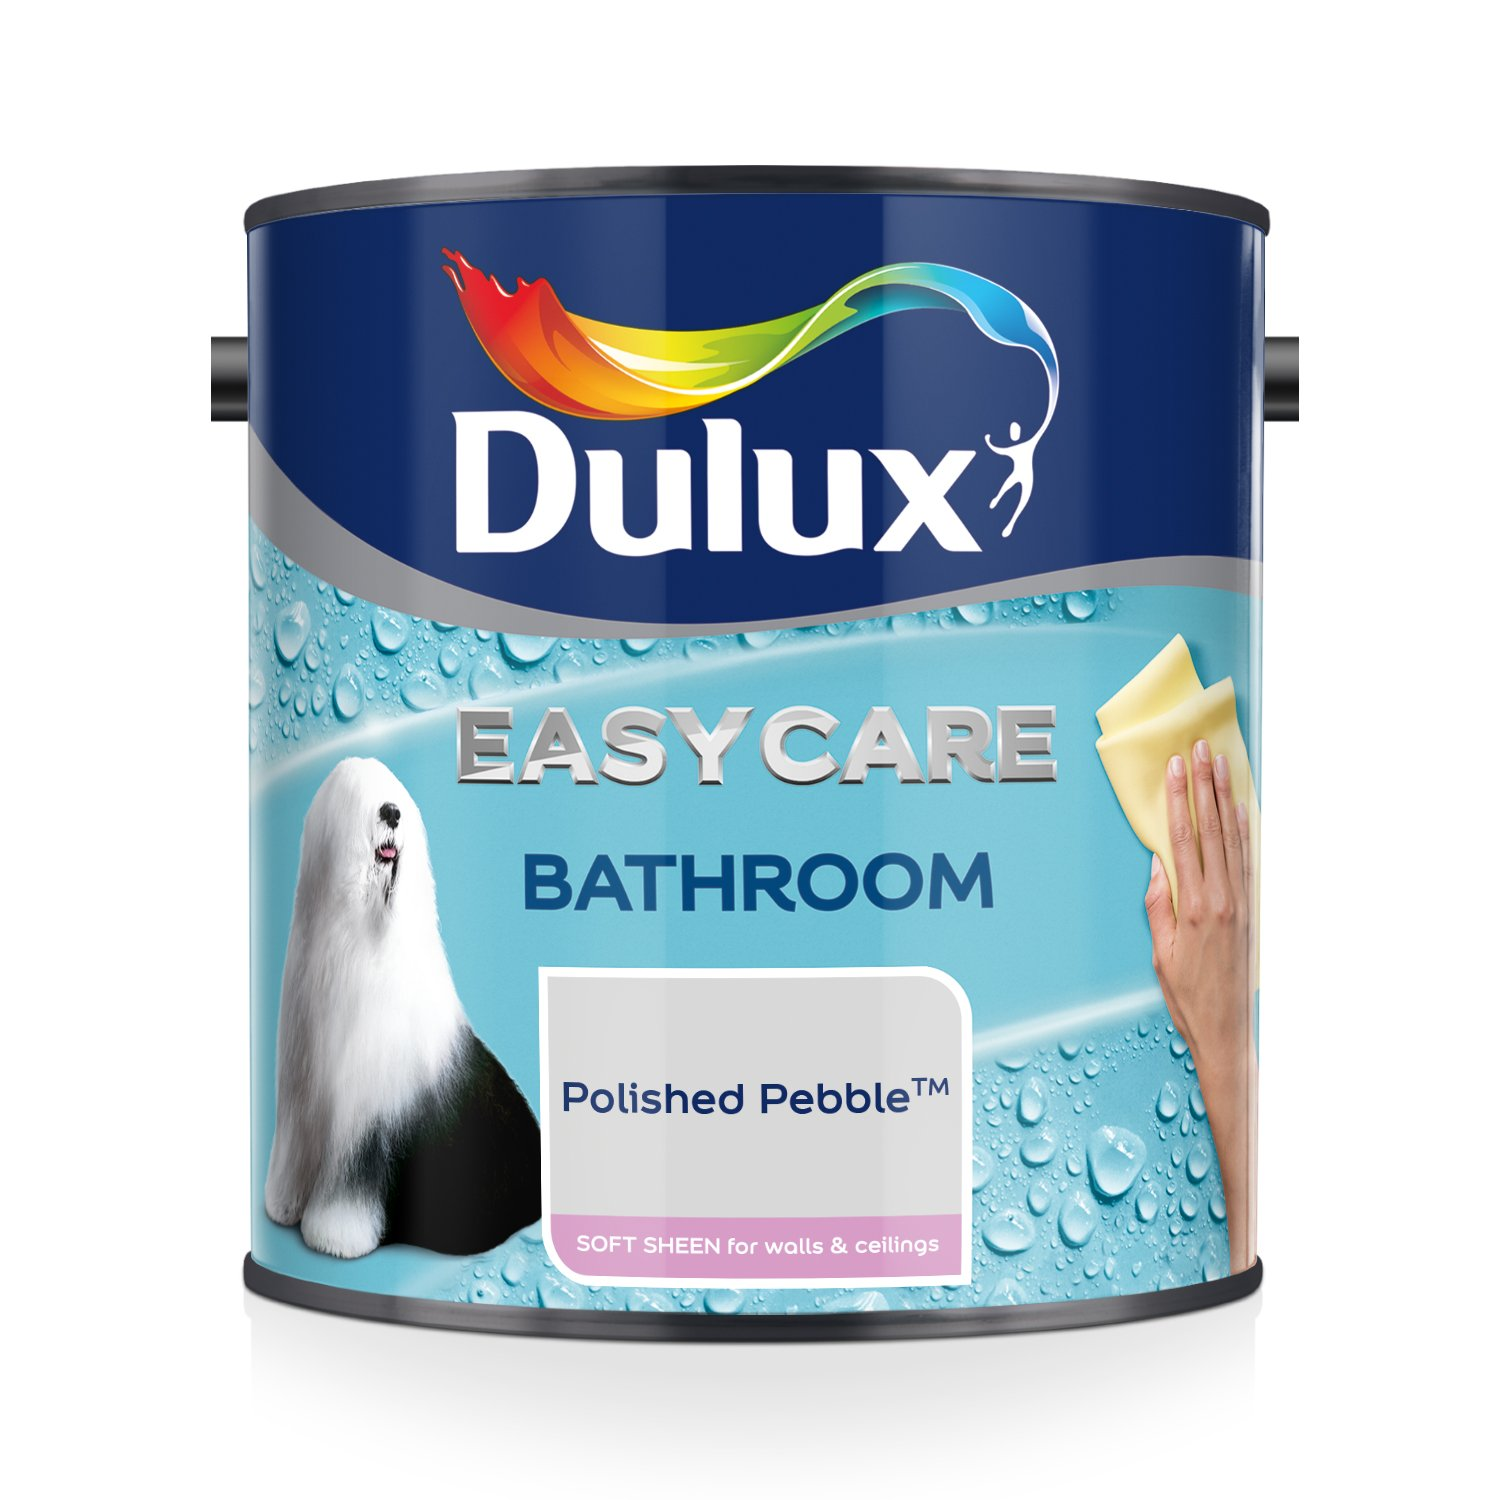 Dulux Easycare Bathroom Soft Sheen Paint - Ivory Lace 2.5L AkzoNobel 5275839